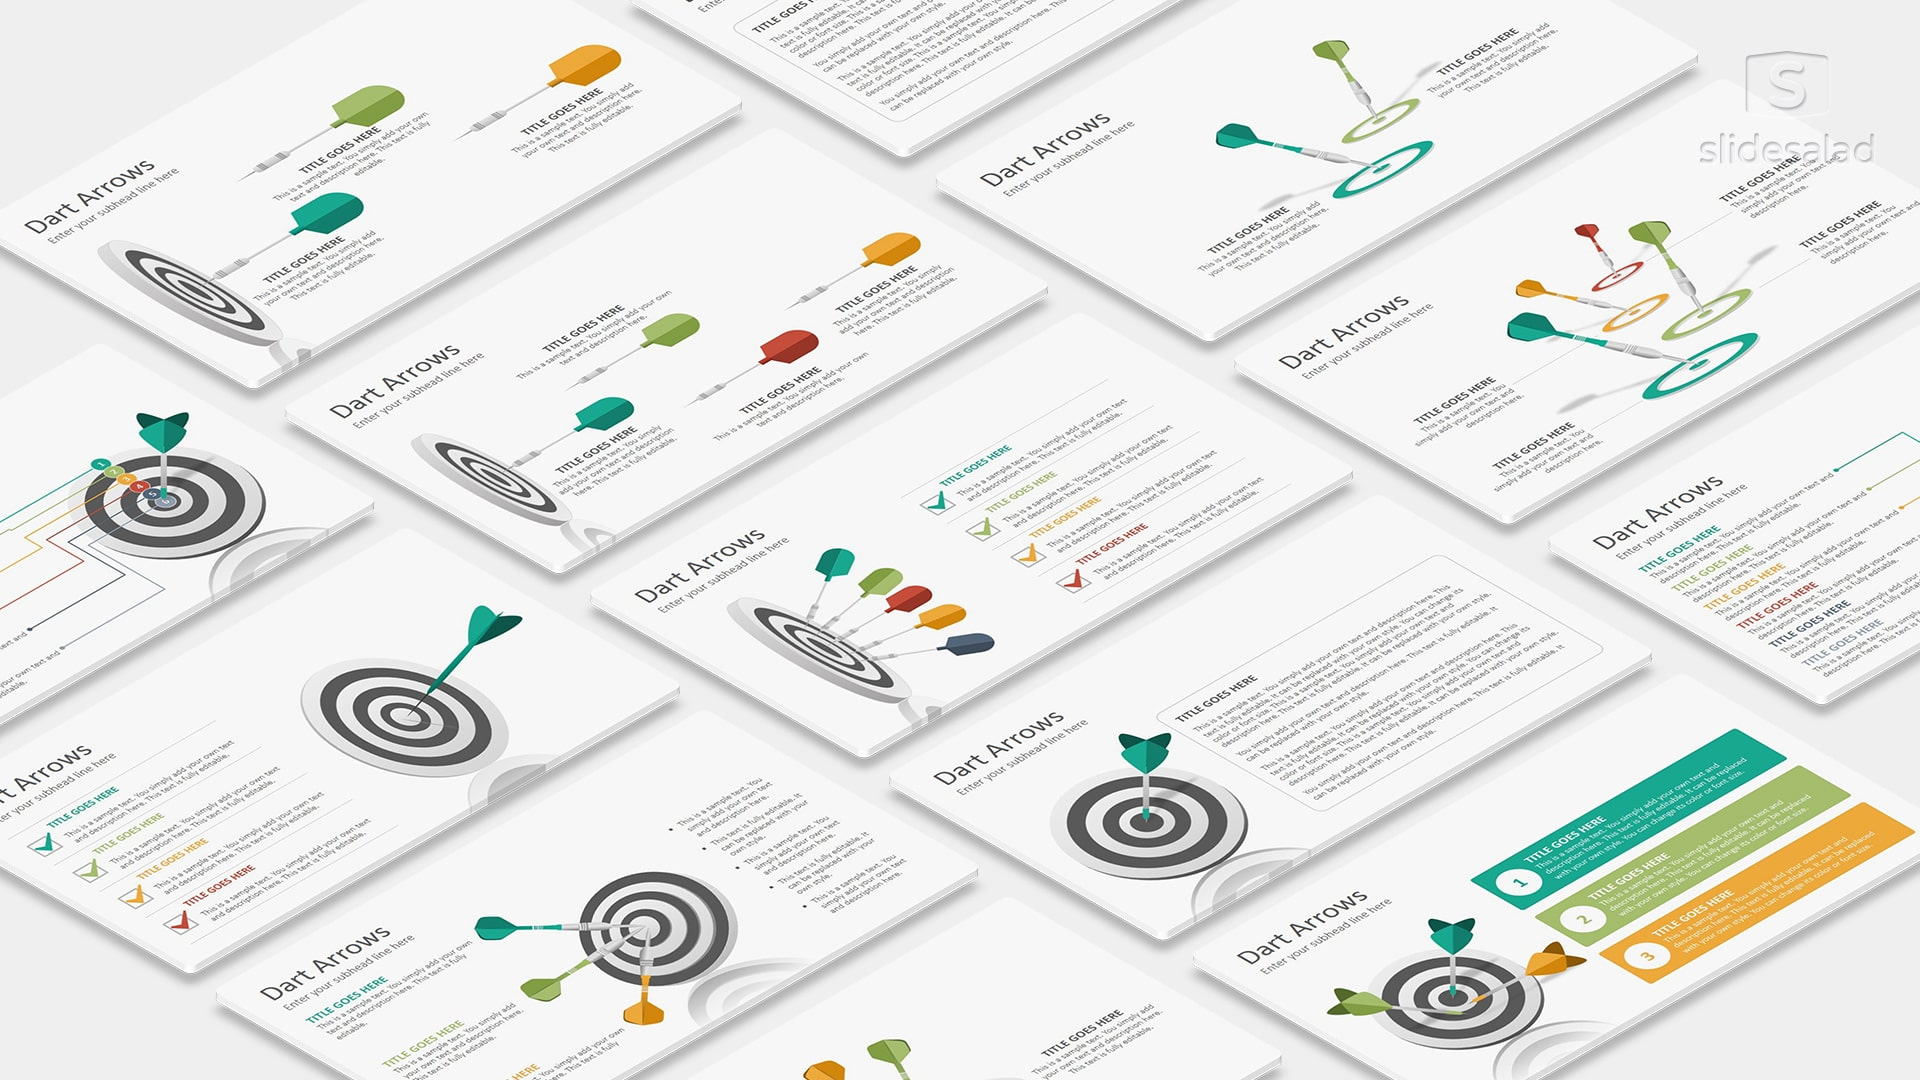 Targets and Goal Infographics PowerPoint Presentation Template – Minimalist and Clean Infographic Designs